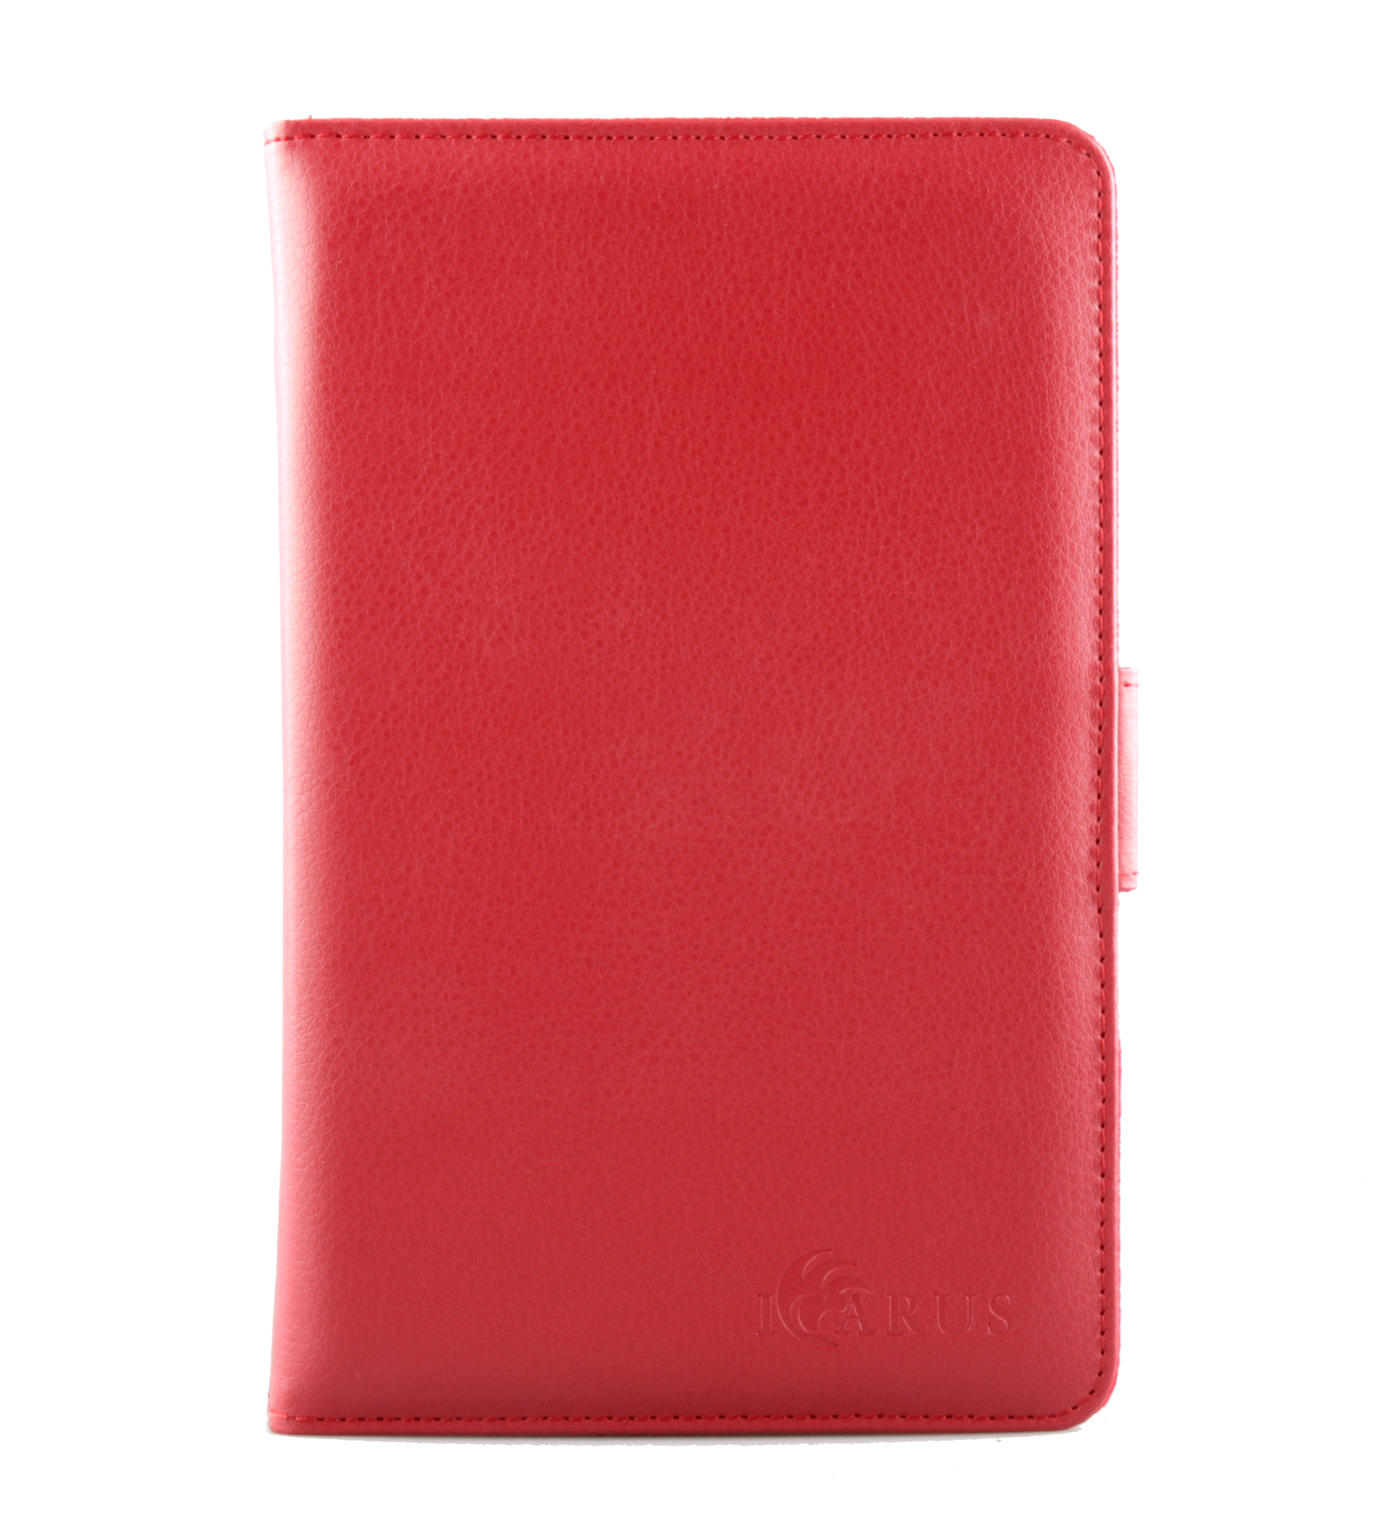 Icarus Omnia M703BK cover rood